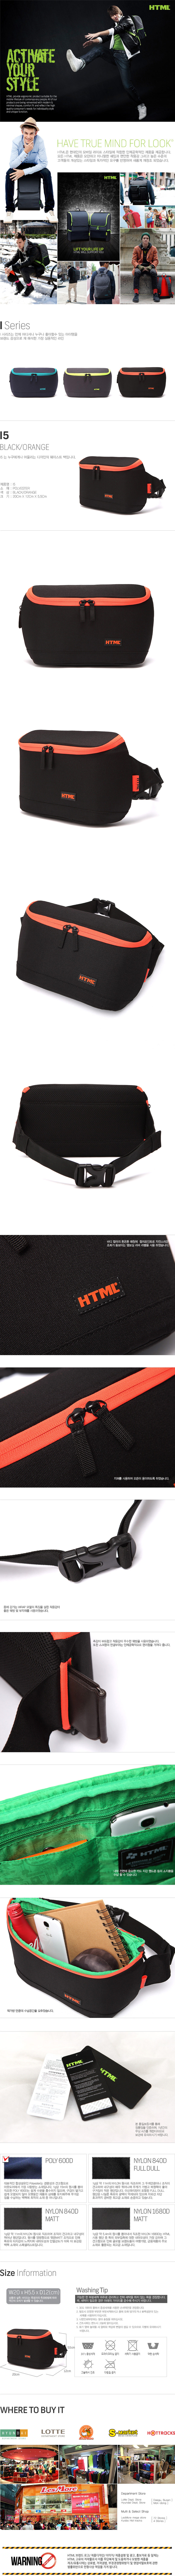 [에이치티엠엘]HTML- I5 Hip sack (BLACK/ORANGE)